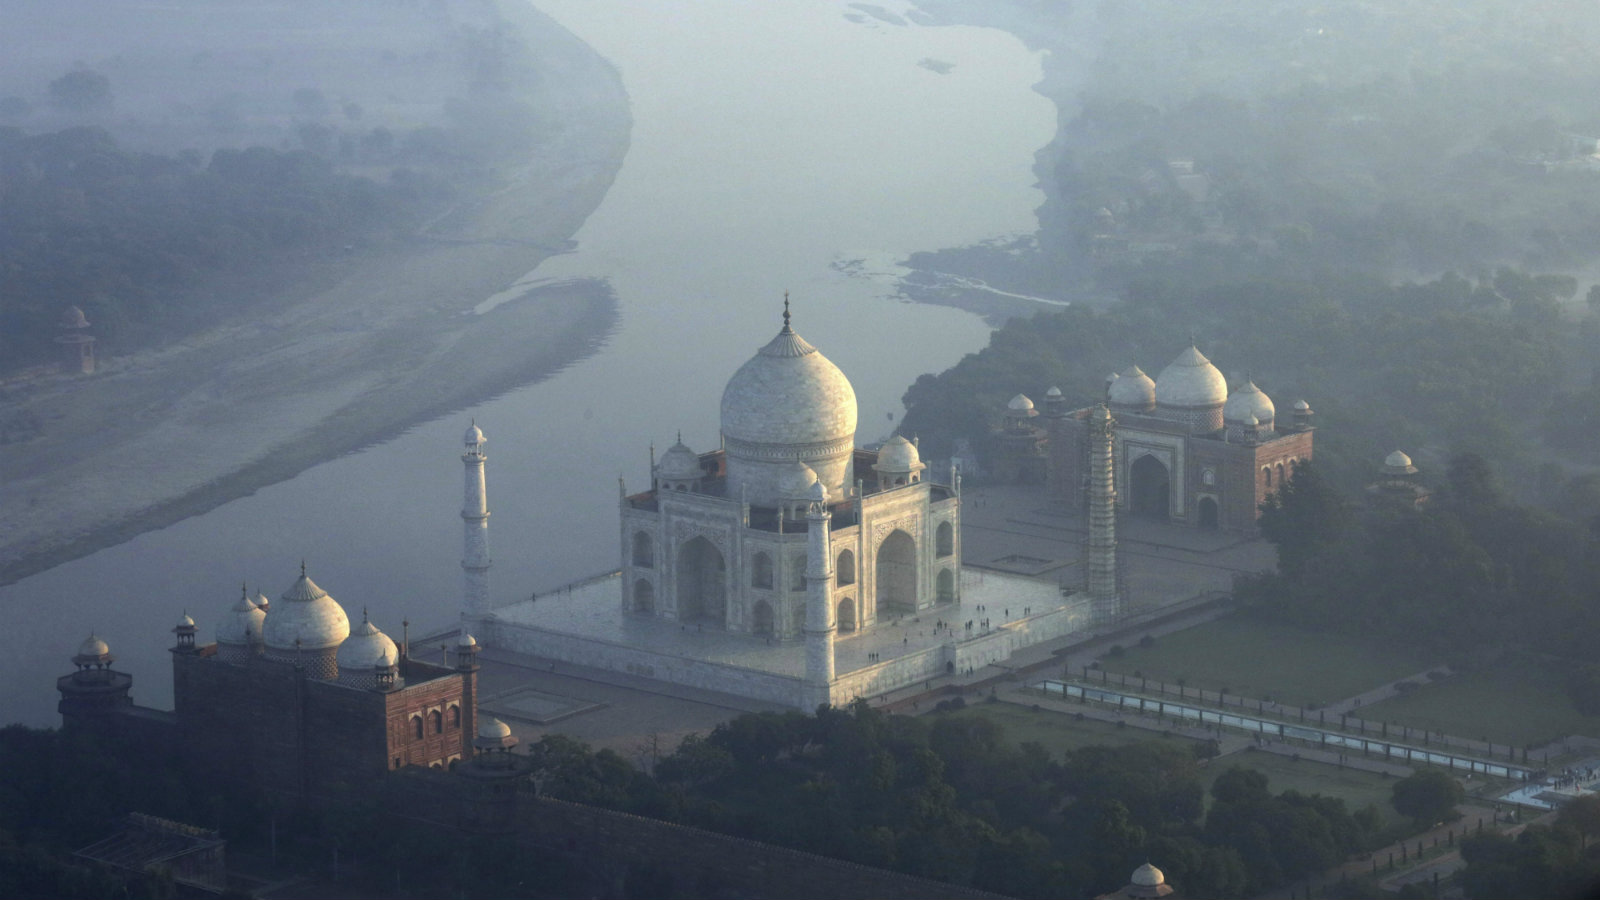 An aerial view taken from a hot air balloon shows the Taj Mahal in the morning hours during the second Taj Balloon festival in Agra, Uttar Pradesh, India, 29 November 2016. The Taj Mahal, an ivory-white marble mausoleum, is a UNESCO World Heritage Site landmark. 16 balloons from different countries including the USA, Britain, Belgium, Poland, Malaysia and India participated in the festival.